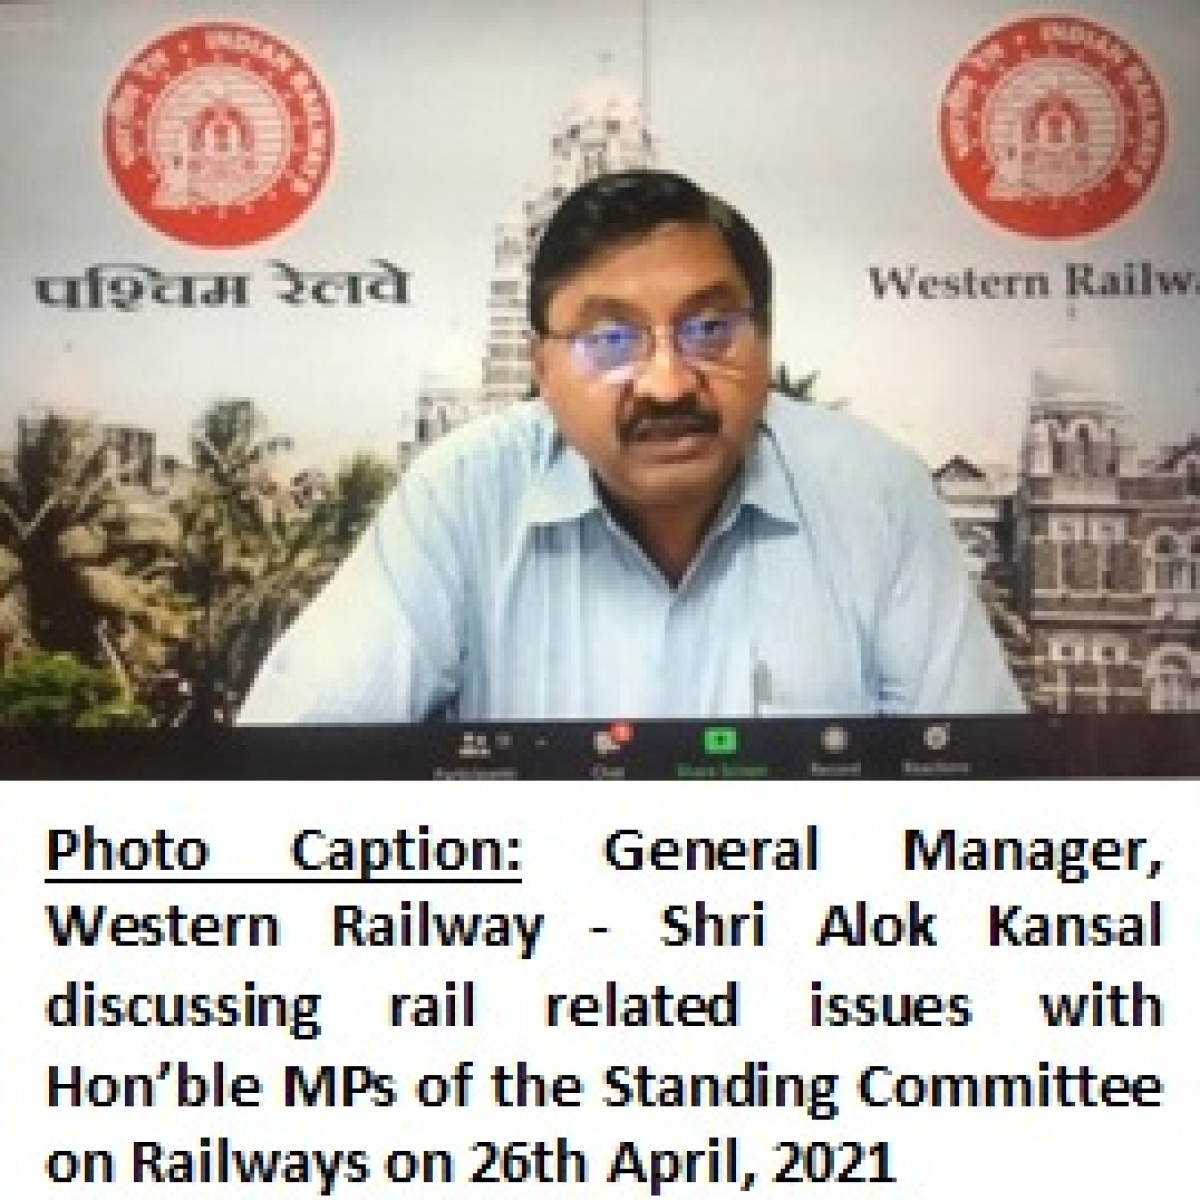 Alok Kansal - General Manager of Western Railway  interacts with MPS of the Standing Committee on Railways